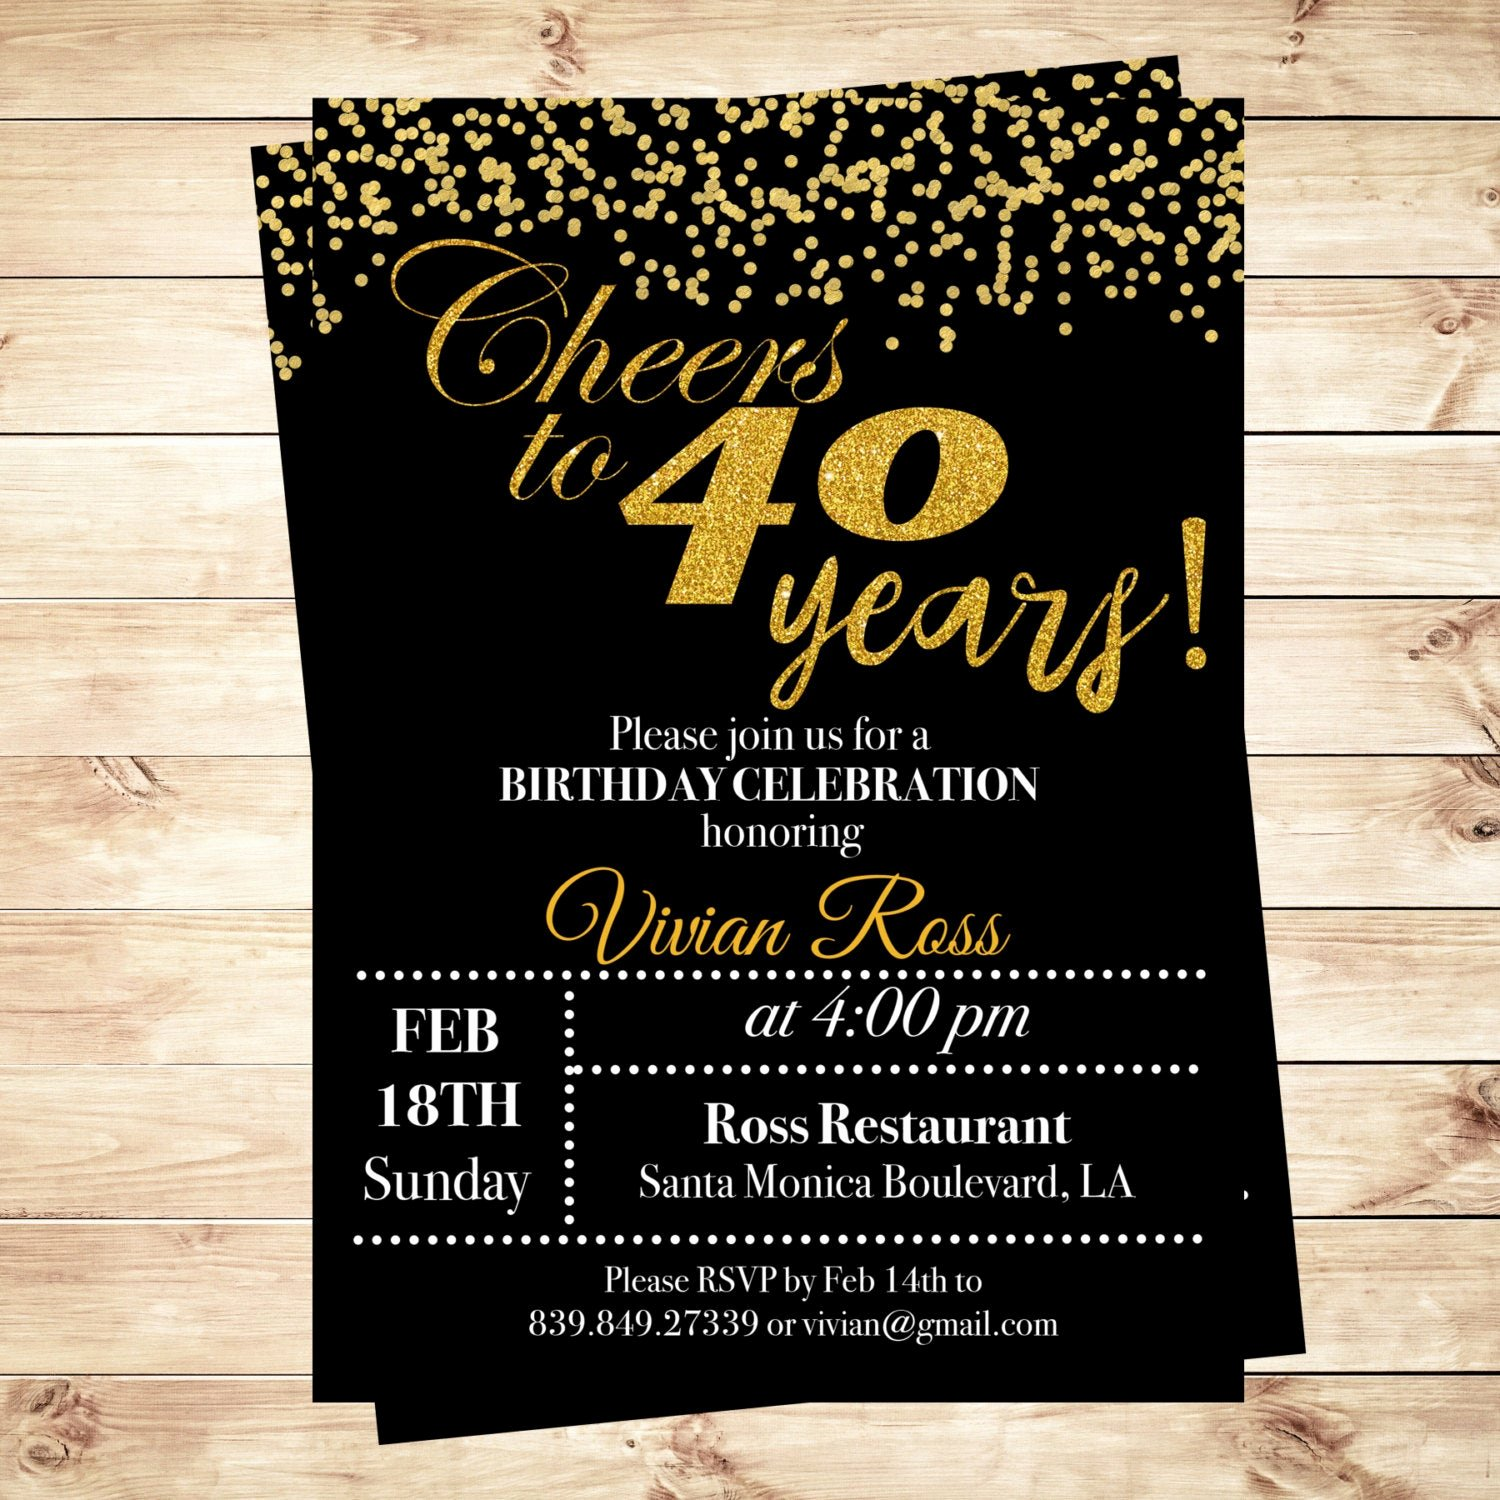 40th Birthday Invitation Wording Awesome Cheers to 40 Years Birthday Printable Invitation 40th